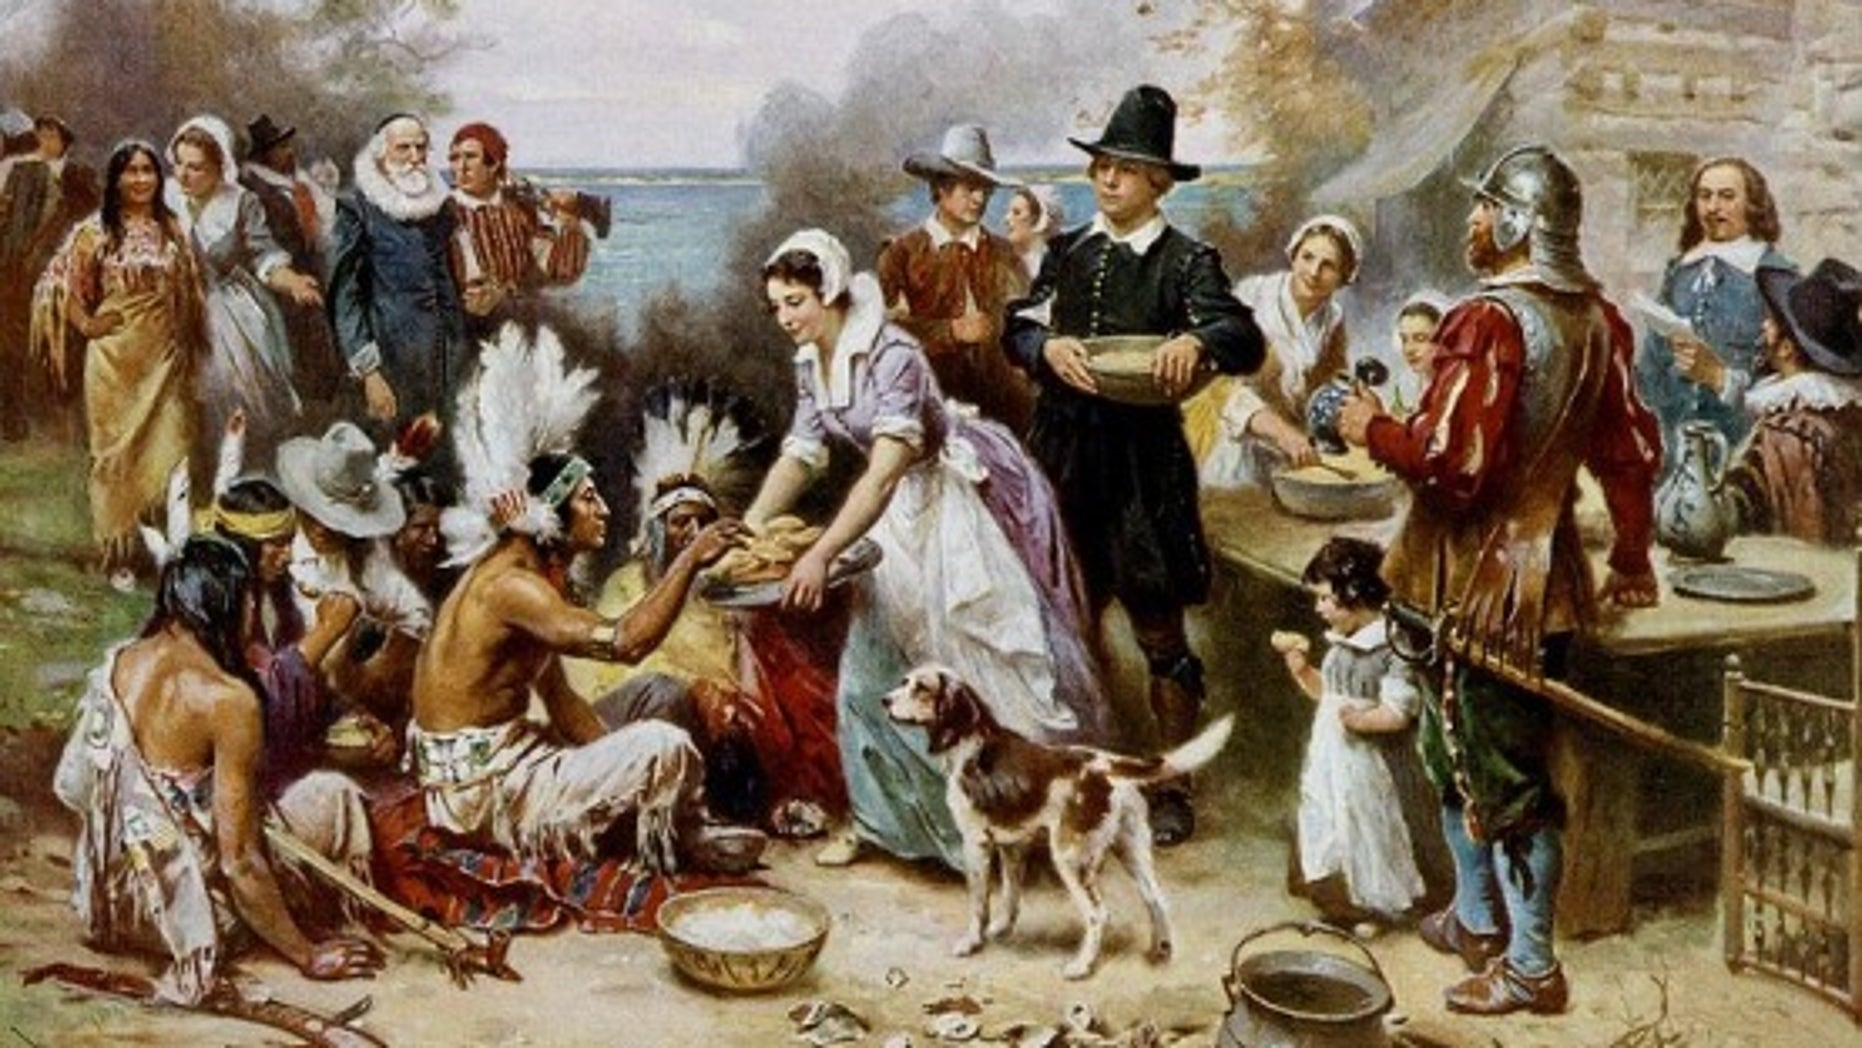 An artistic depiction of the first Thanksgiving feast